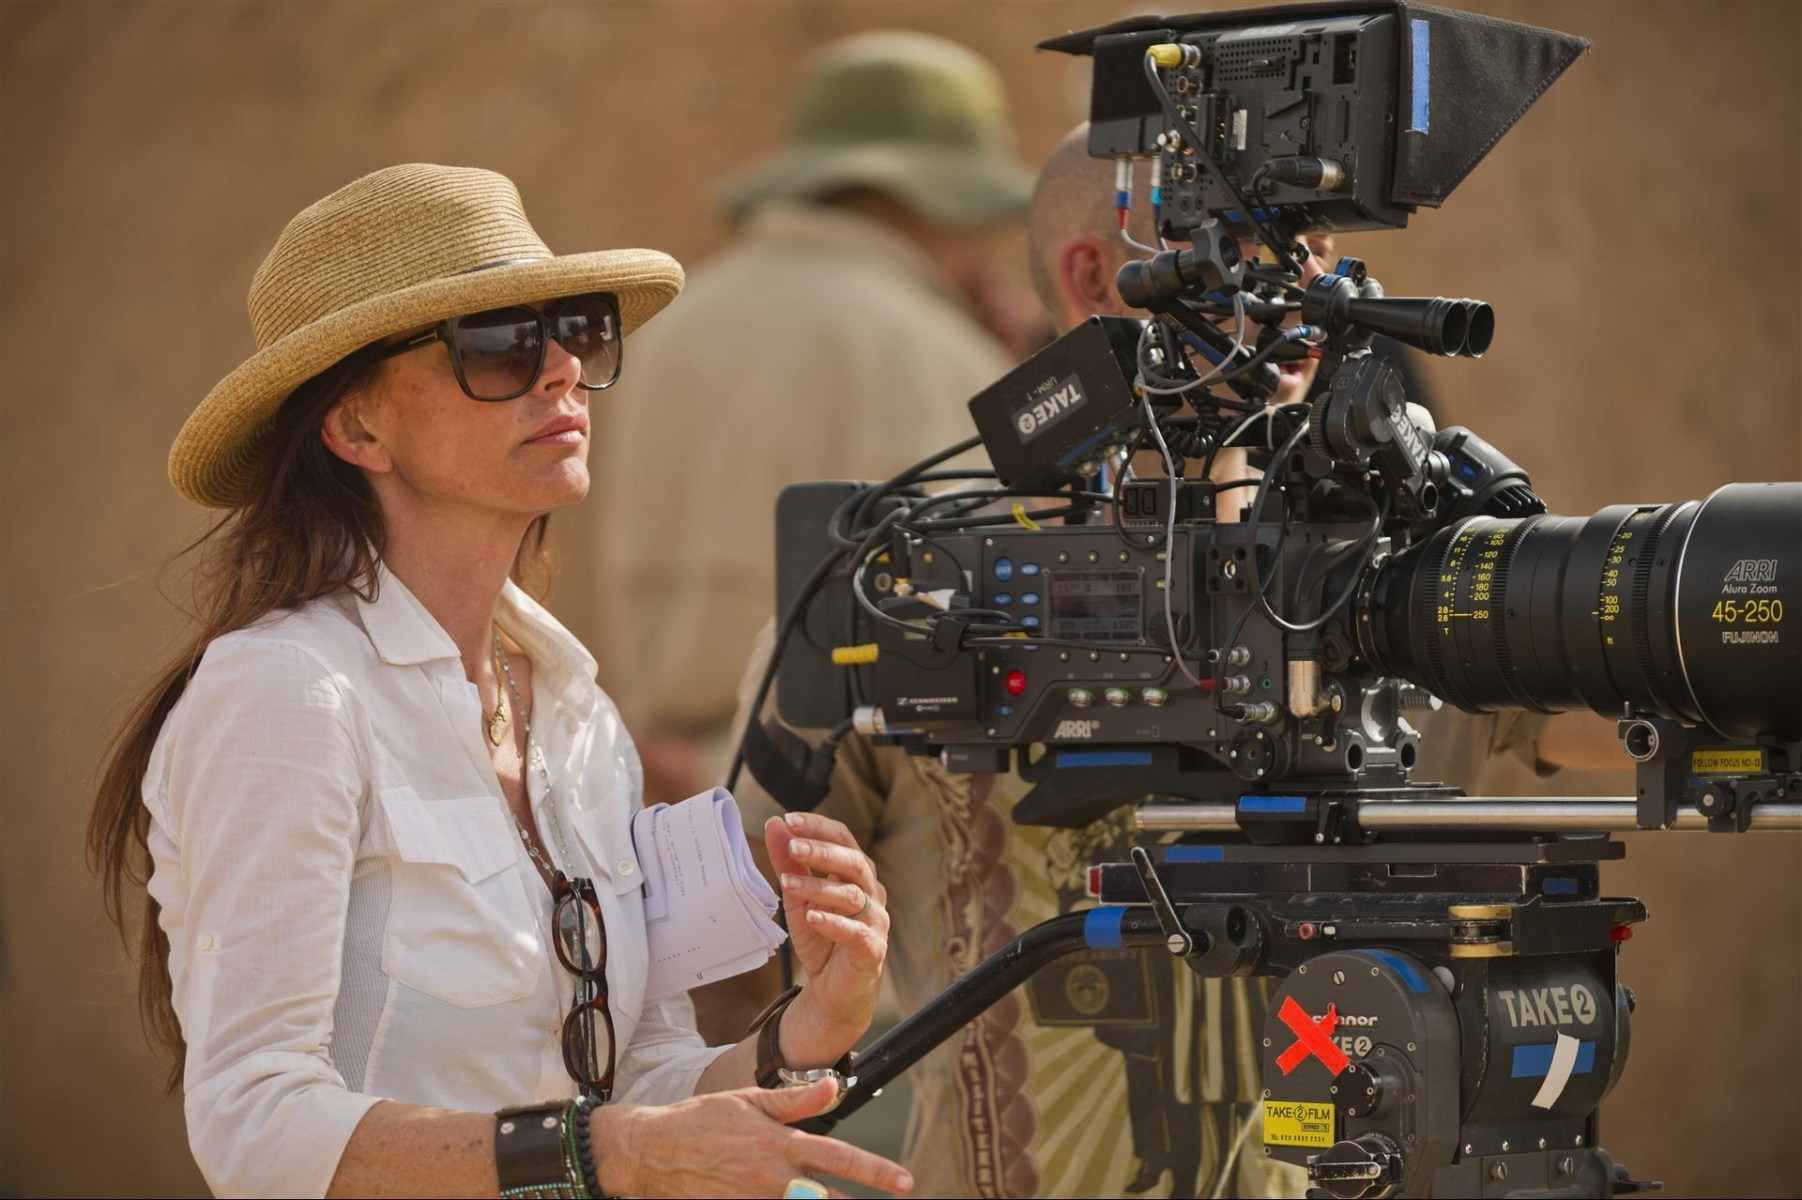 Roma Downey : The Bible (2013) Behind the Scenes